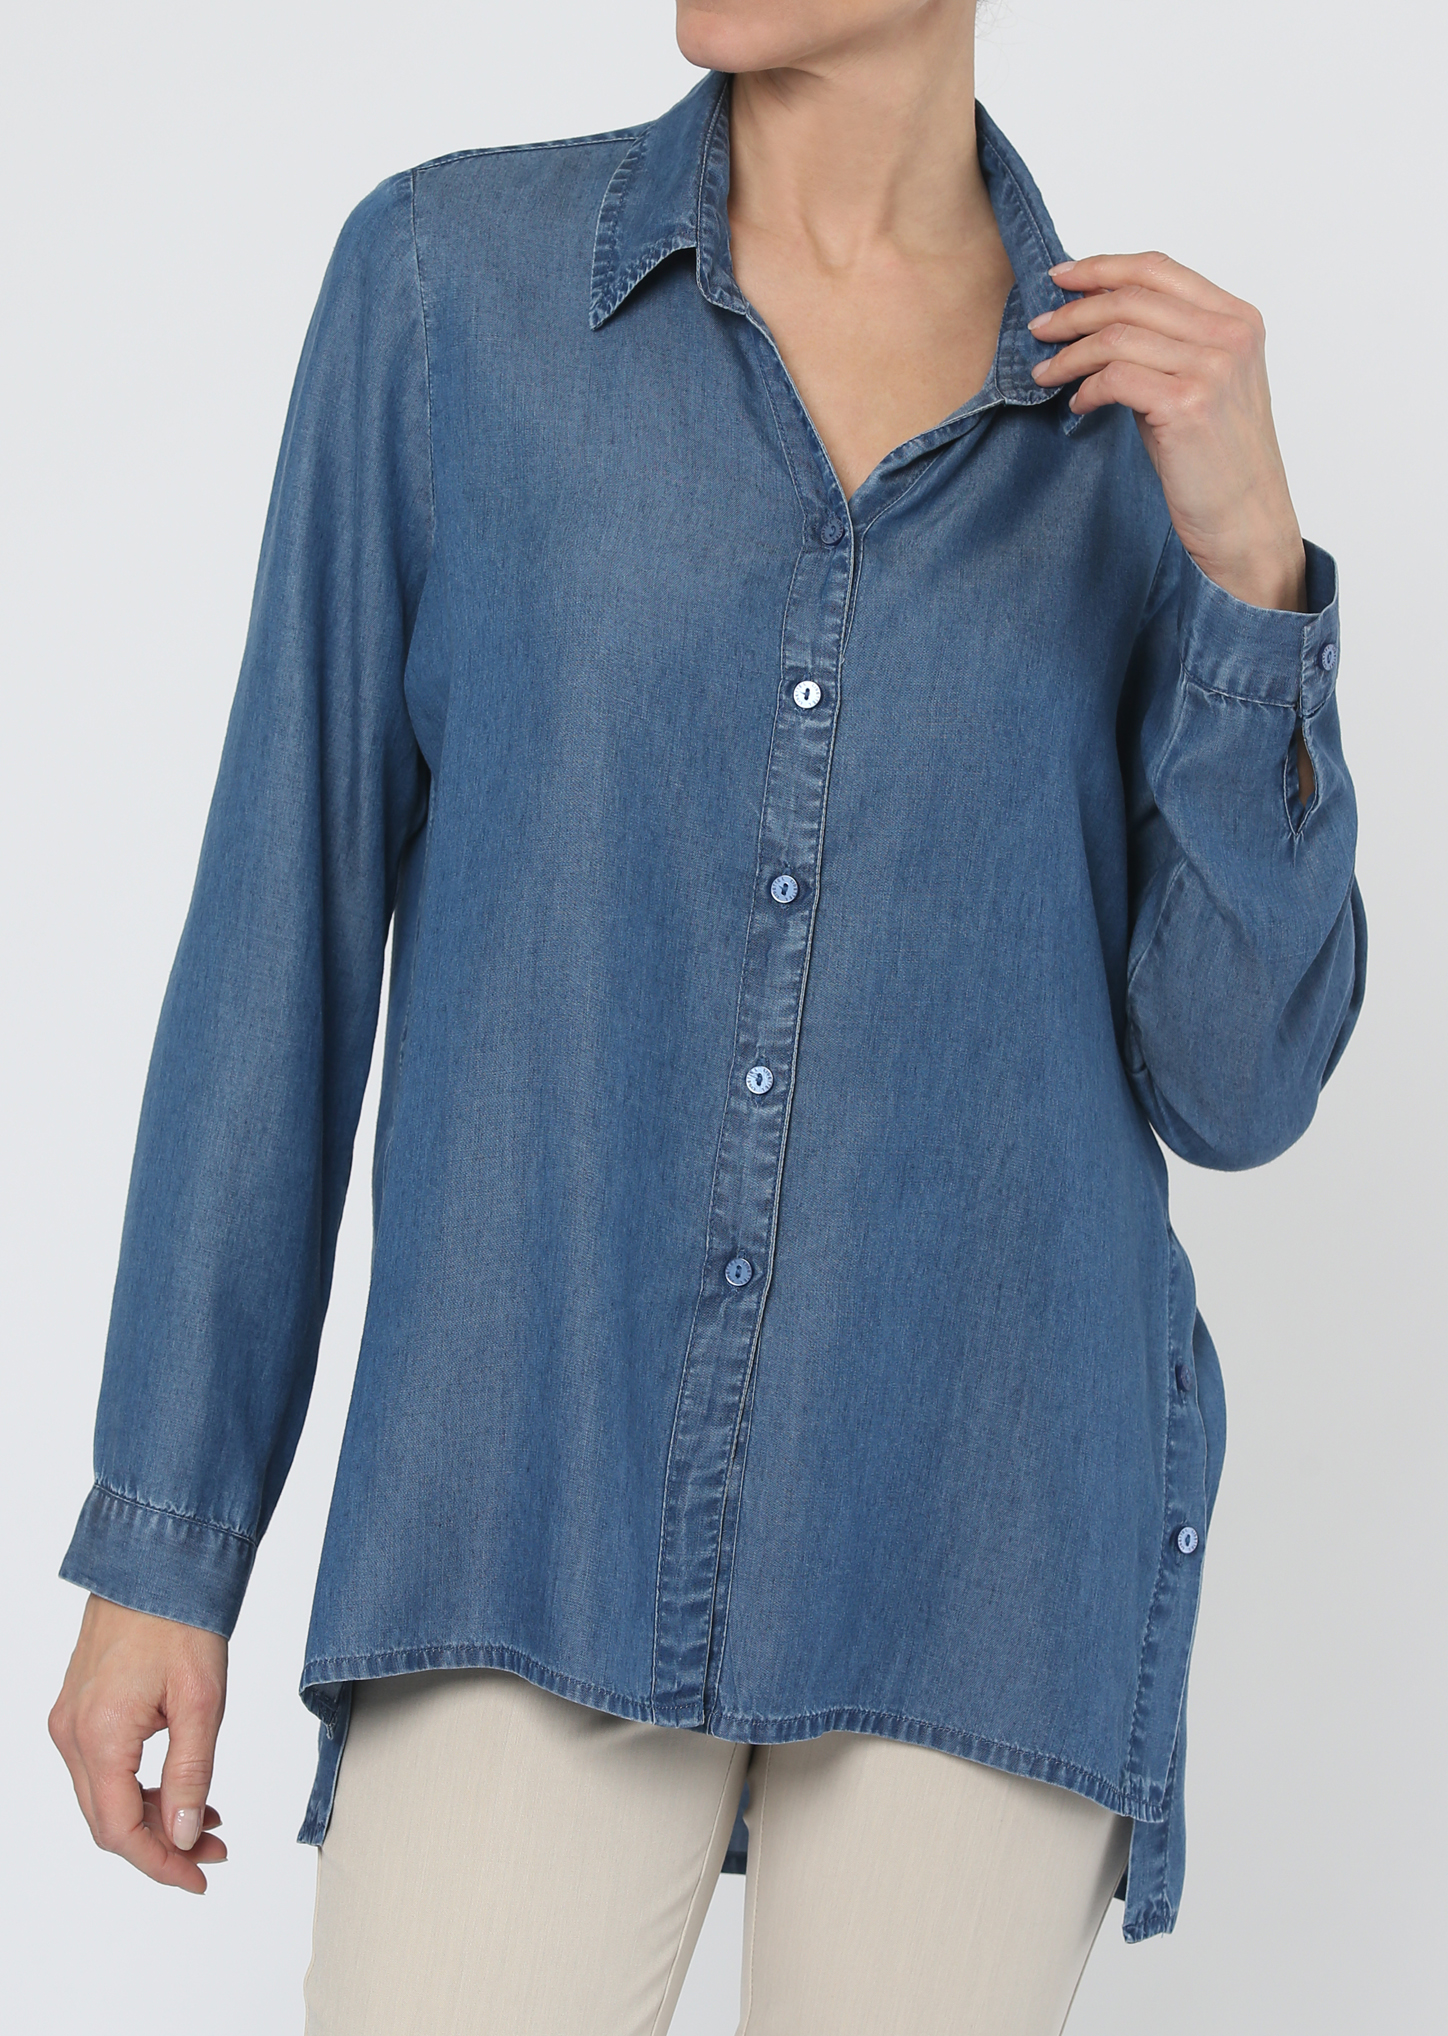 Lisette L. Buttoned Blouse Style 463218 Taylor Denim Color Blue